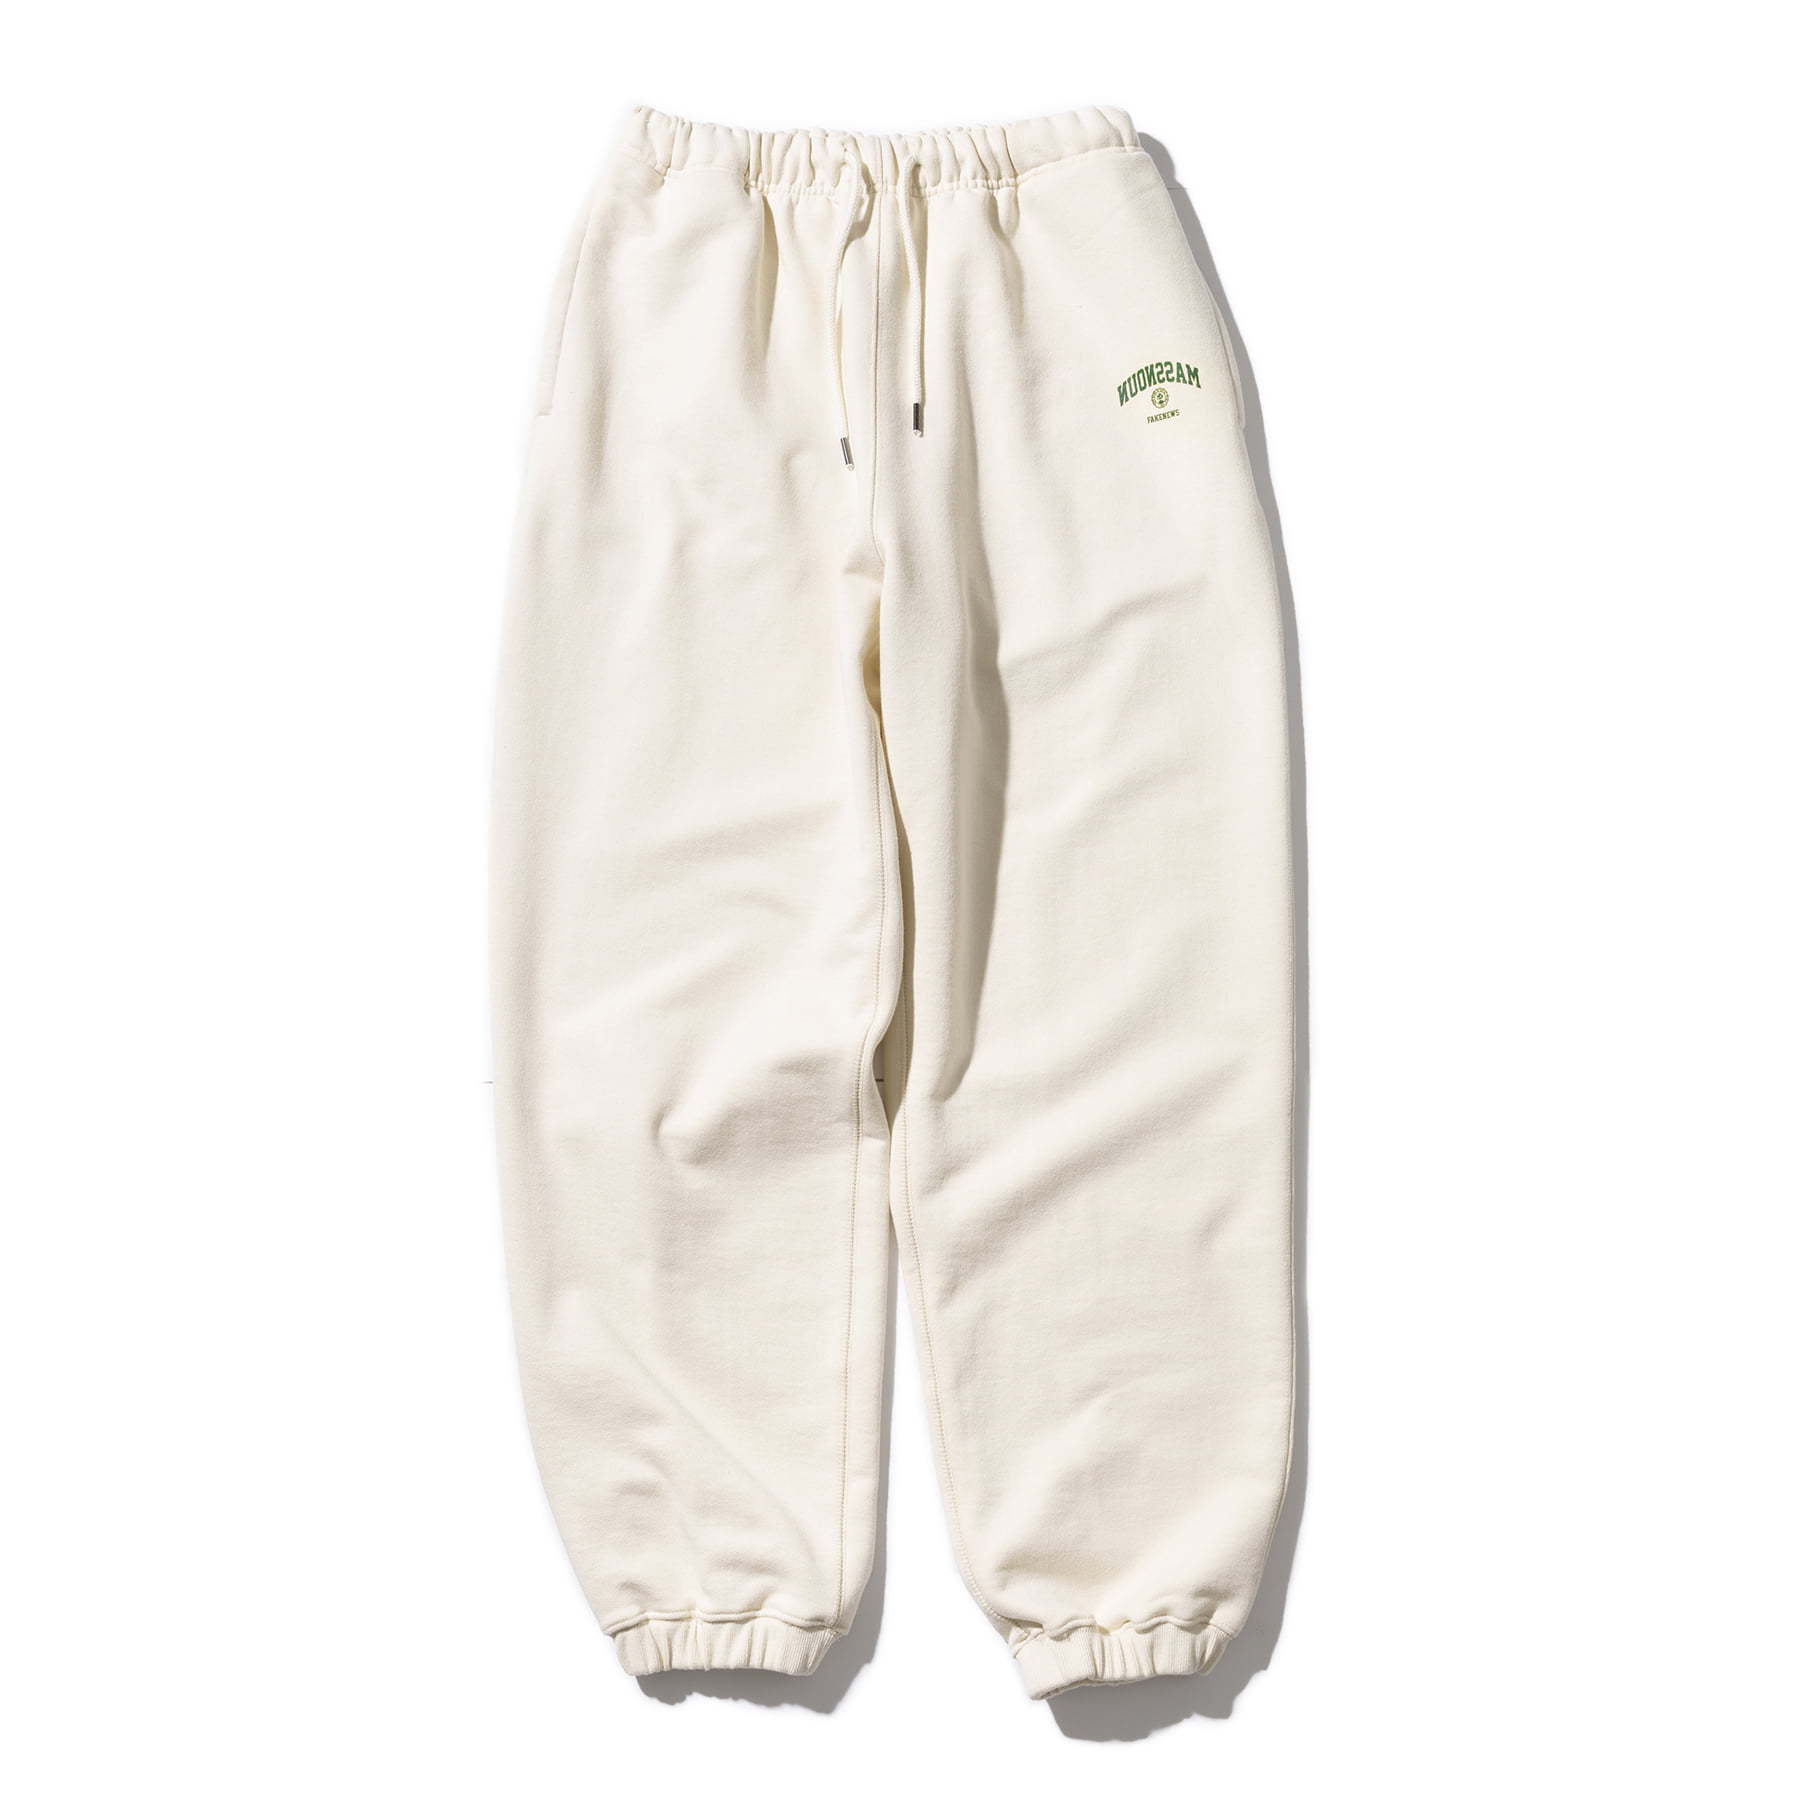 (30%)ARCH FAKENEWS TRAINING PANTS MSOTP004-IV